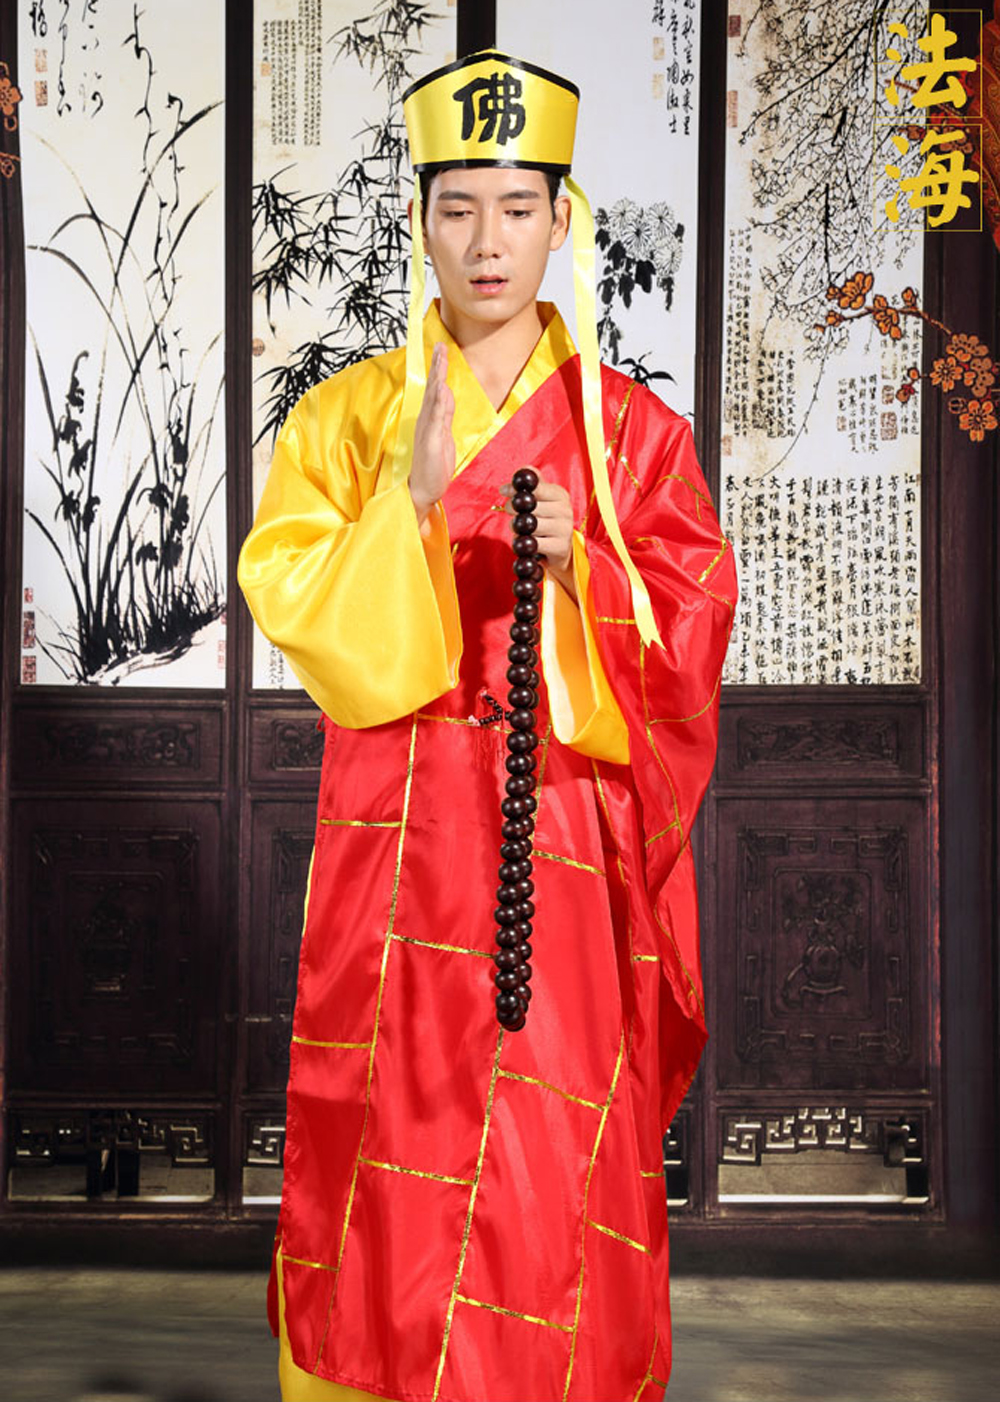 The Tang costume rental will sketch funny Fahai costume rental journey to the west the White Snake costume costumes